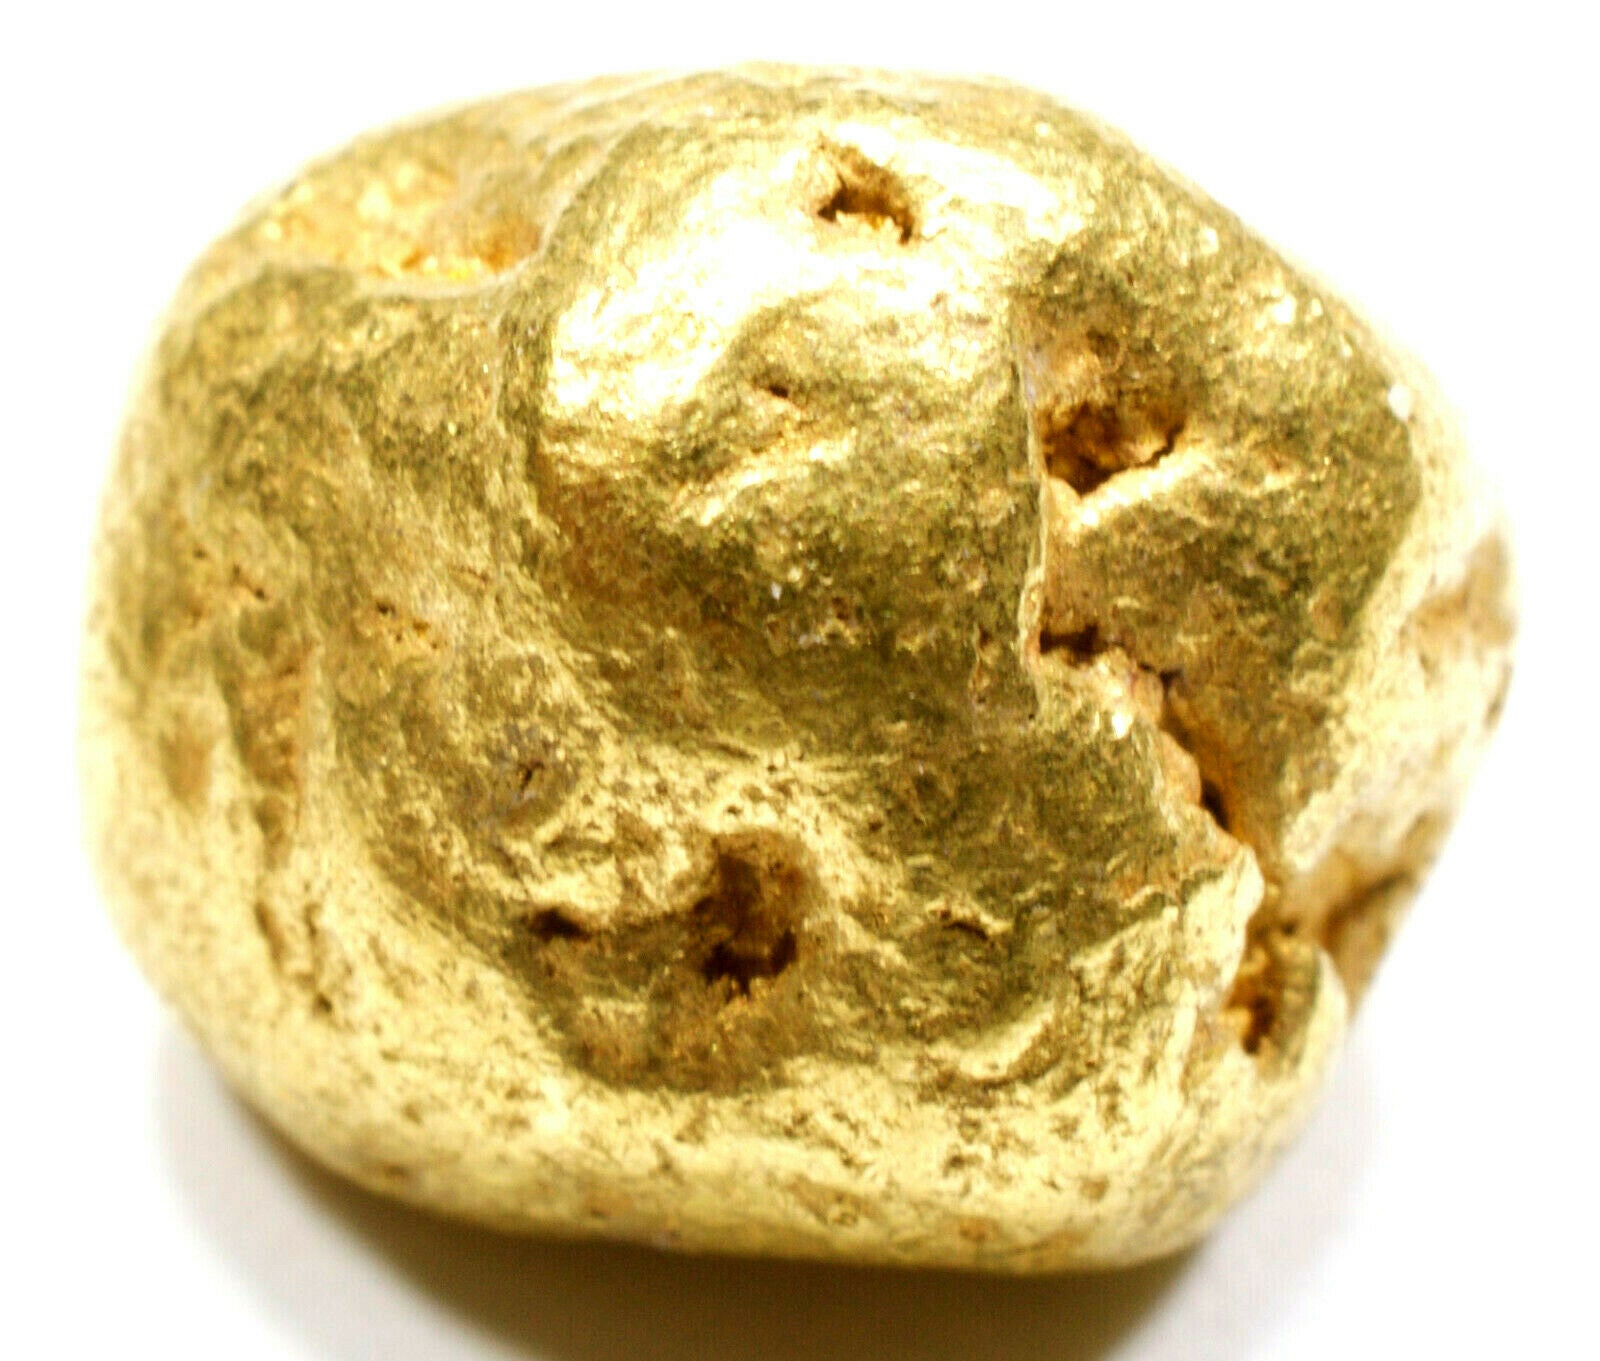 3.422 GRAMS ALASKAN YUKON BC NATURAL PURE GOLD NUGGET GENUINE (#N604) C GRADE - Liquidbullion